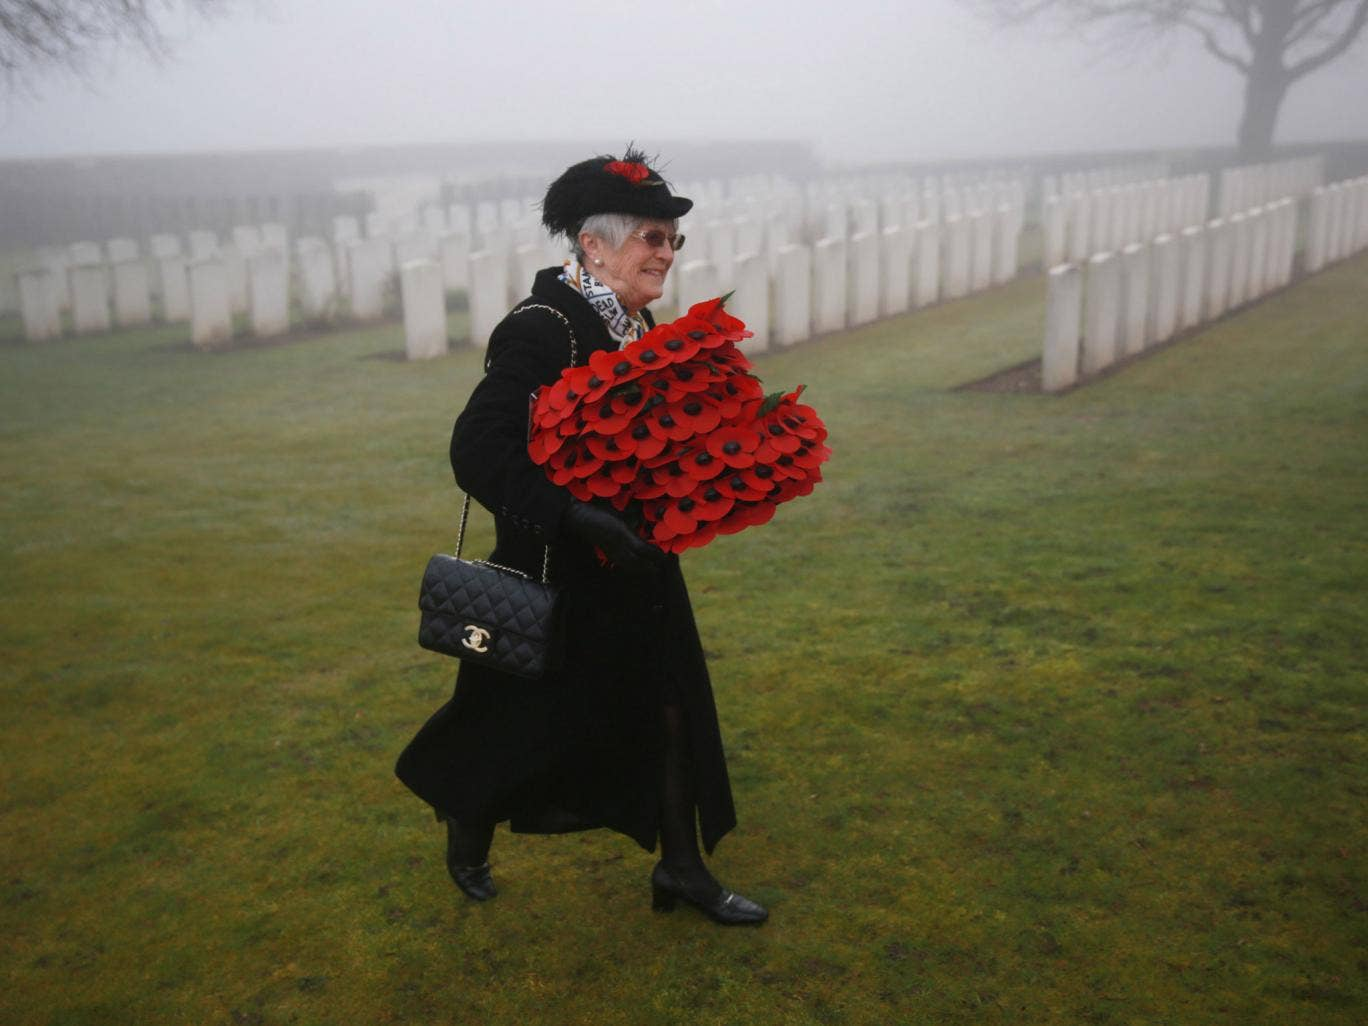 A mourner carries wreaths before the re-burial of Private William McAleer at Loos British Cemetery in Loos-en-Gohelle